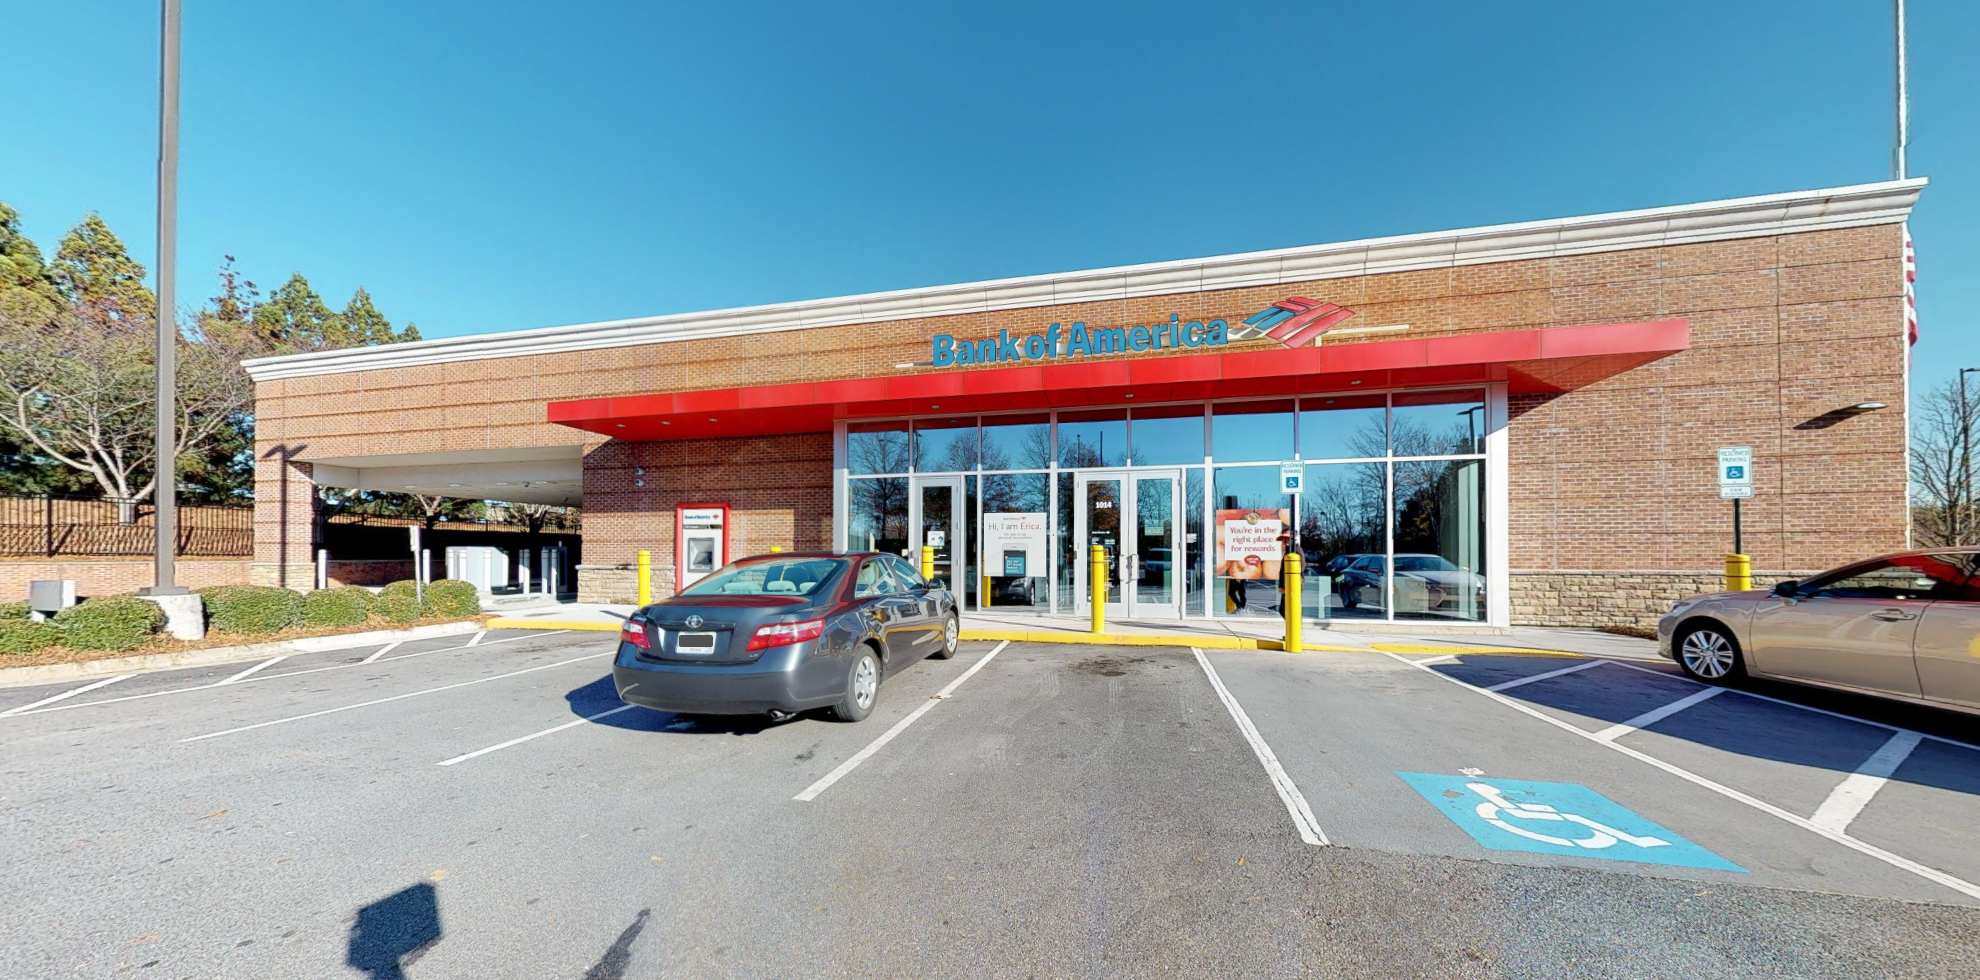 Bank of America financial center with drive-thru ATM   1014 Old Peachtree Rd NW, Lawrenceville, GA 30043